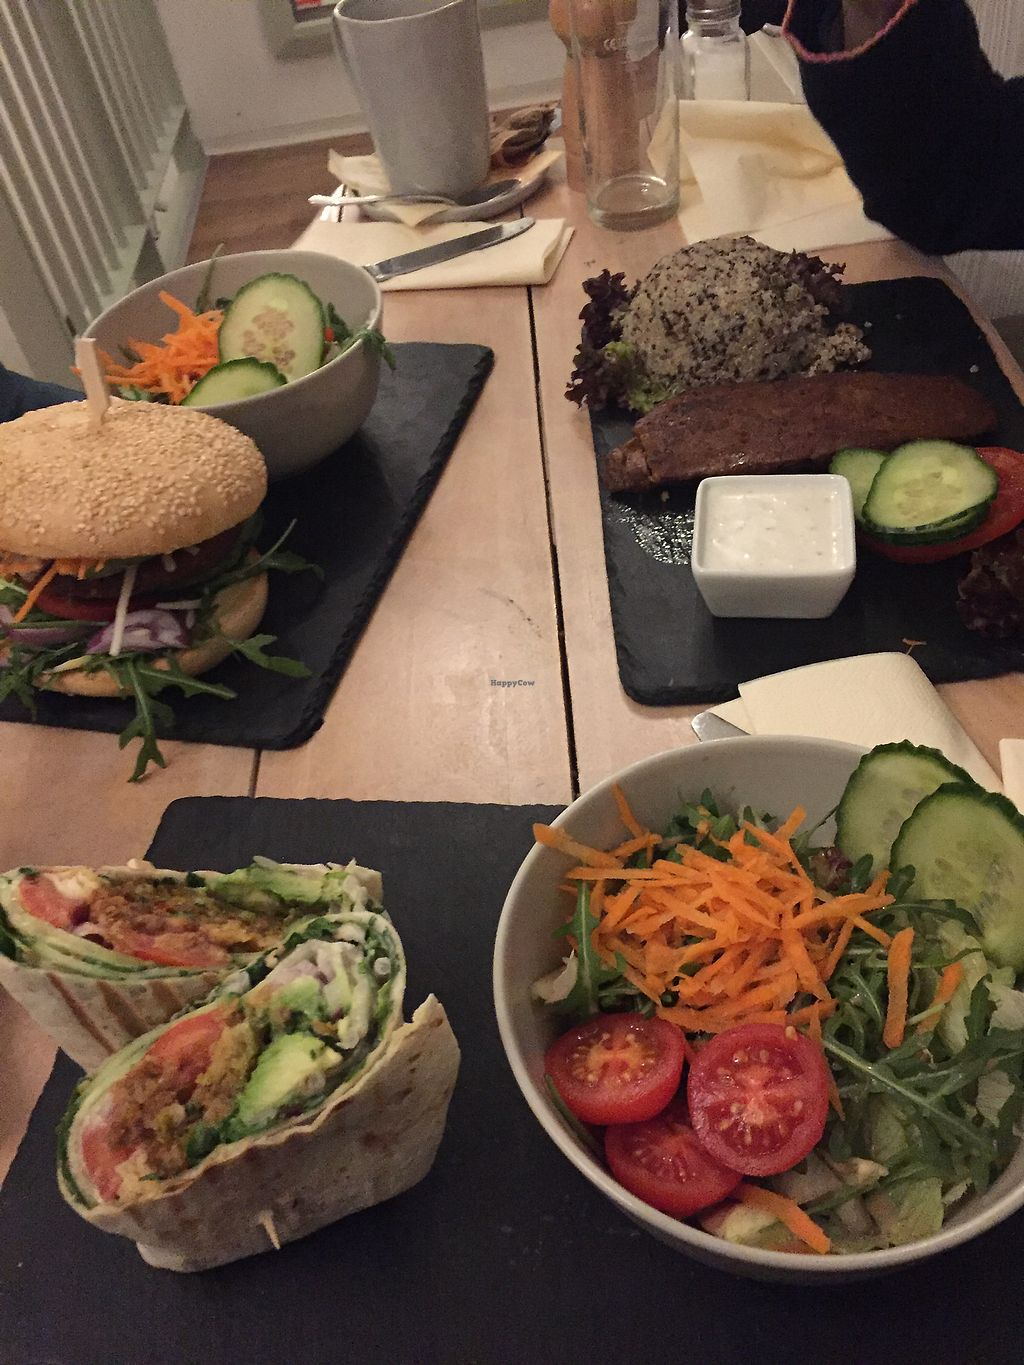 """Photo of Veggiezz - Opernring  by <a href=""""/members/profile/Enivid"""">Enivid</a> <br/>A steak, a burger, and a wrap <br/> January 10, 2018  - <a href='/contact/abuse/image/96634/345128'>Report</a>"""